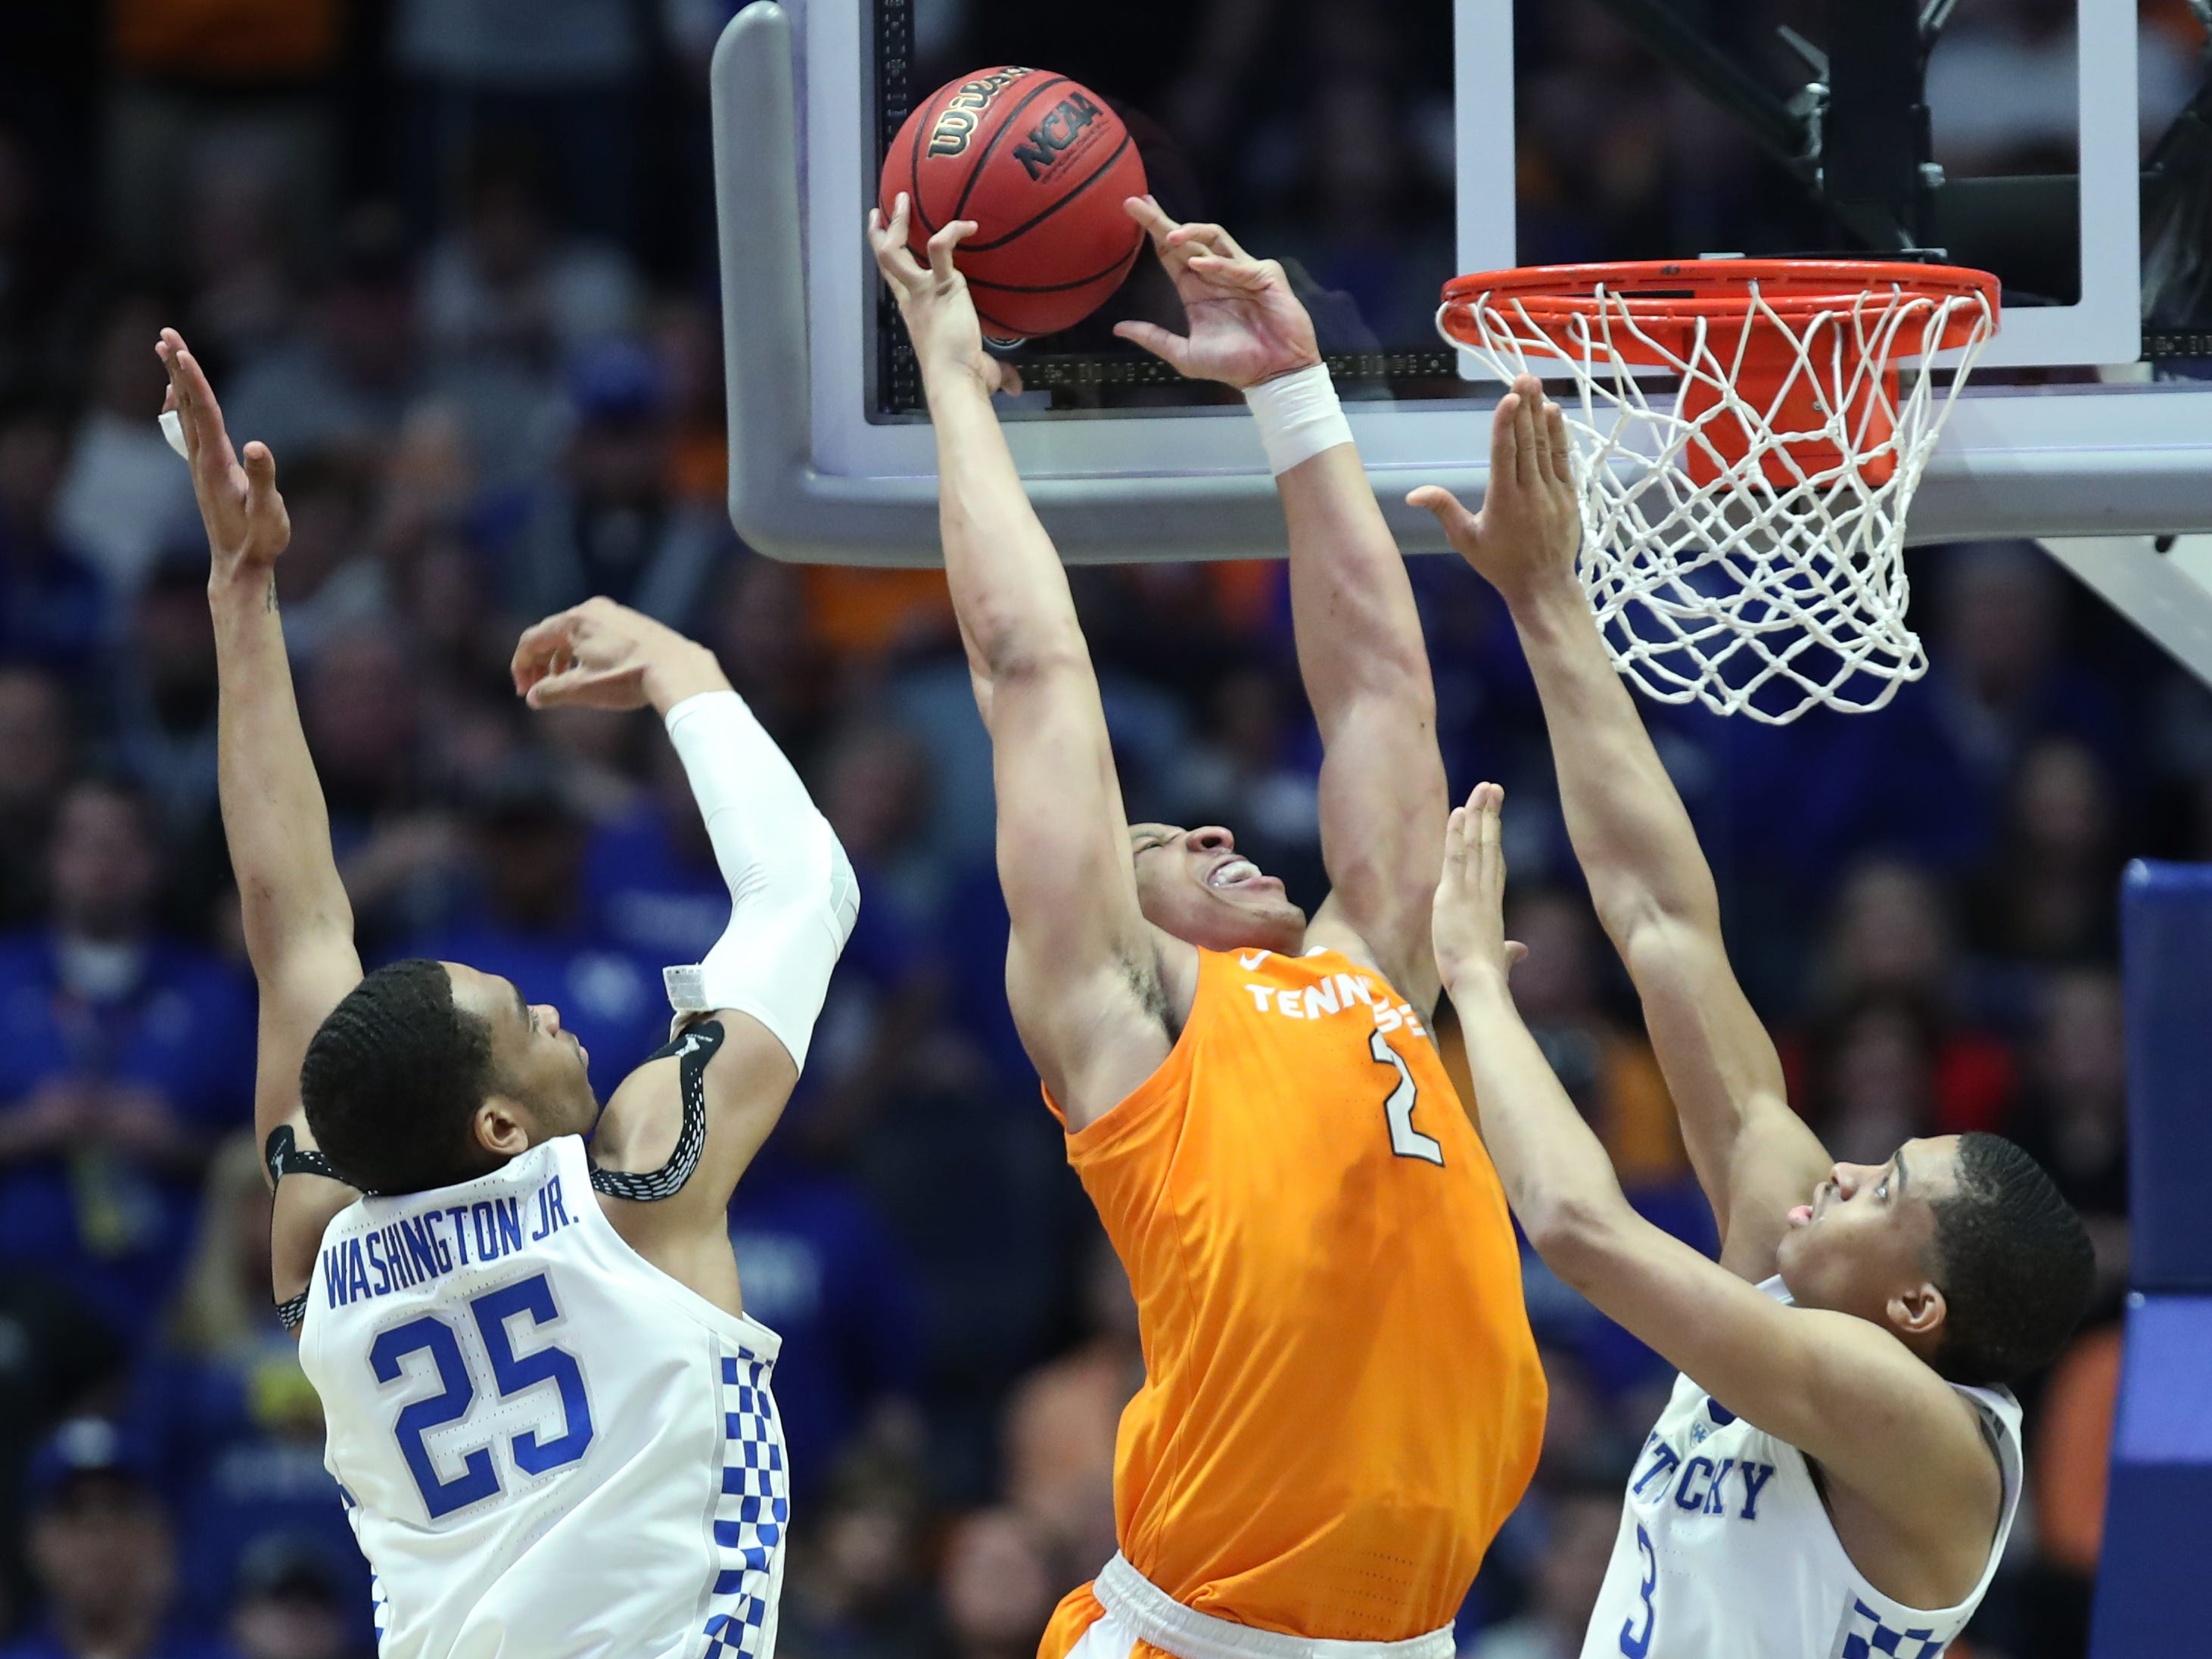 Tennessee forward Grant Williams (2) goes for two defended by Kentucky forward PJ Washington (25) and guard Keldon Johnson (3) during the second half of the SEC Men's Basketball Tournament game at Bridgestone Arena in Nashville, Tenn., Saturday, March 16, 2019.